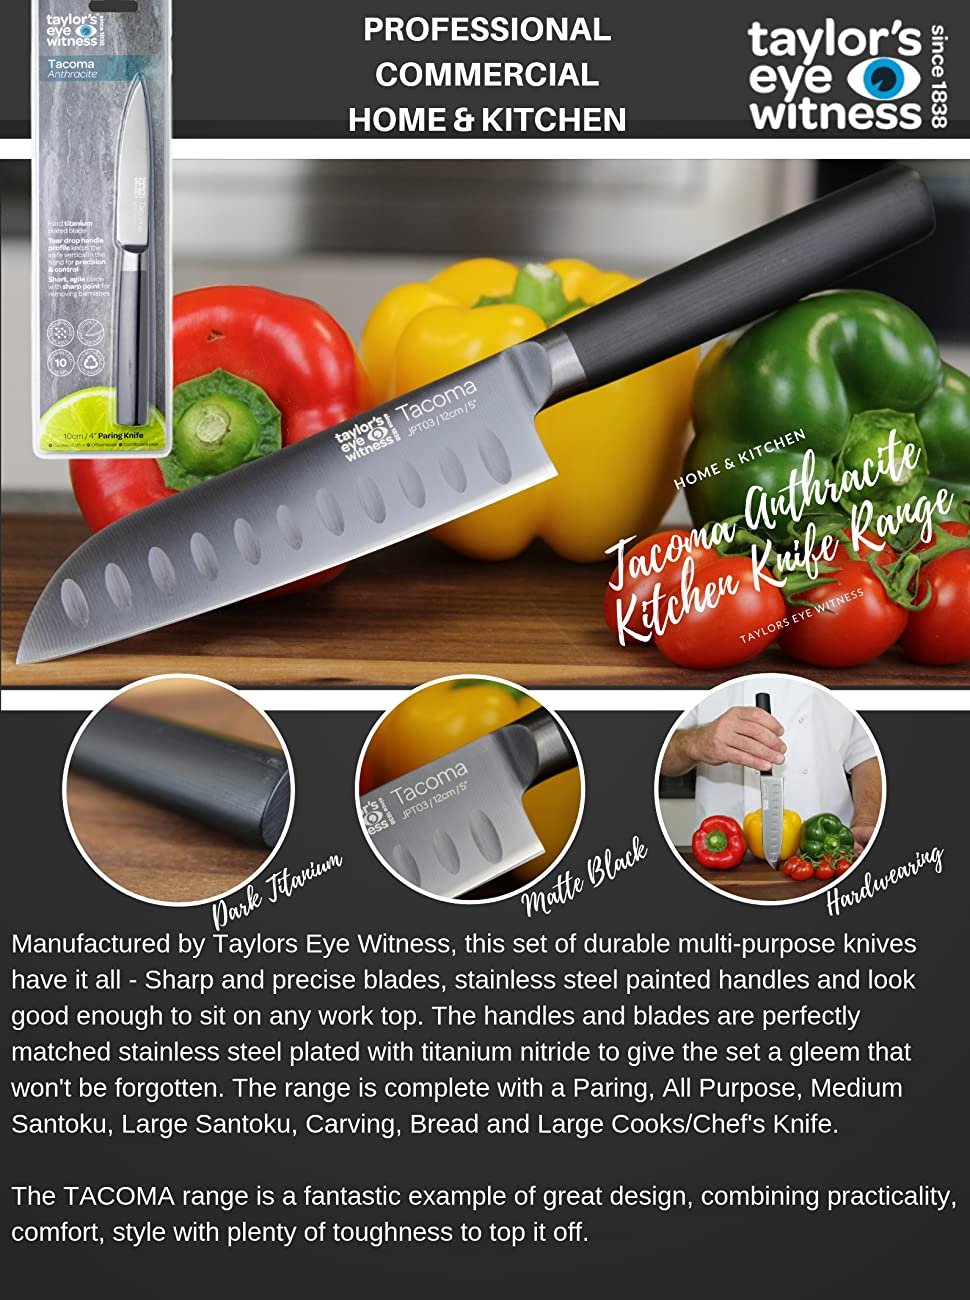 Taylor's Eye Witness Tacoma Bread Knife - Professional 20cm/8 inch Serrated  Cutting Edge  Precision Taper Ground, Titanium Plated Blade  Stainless